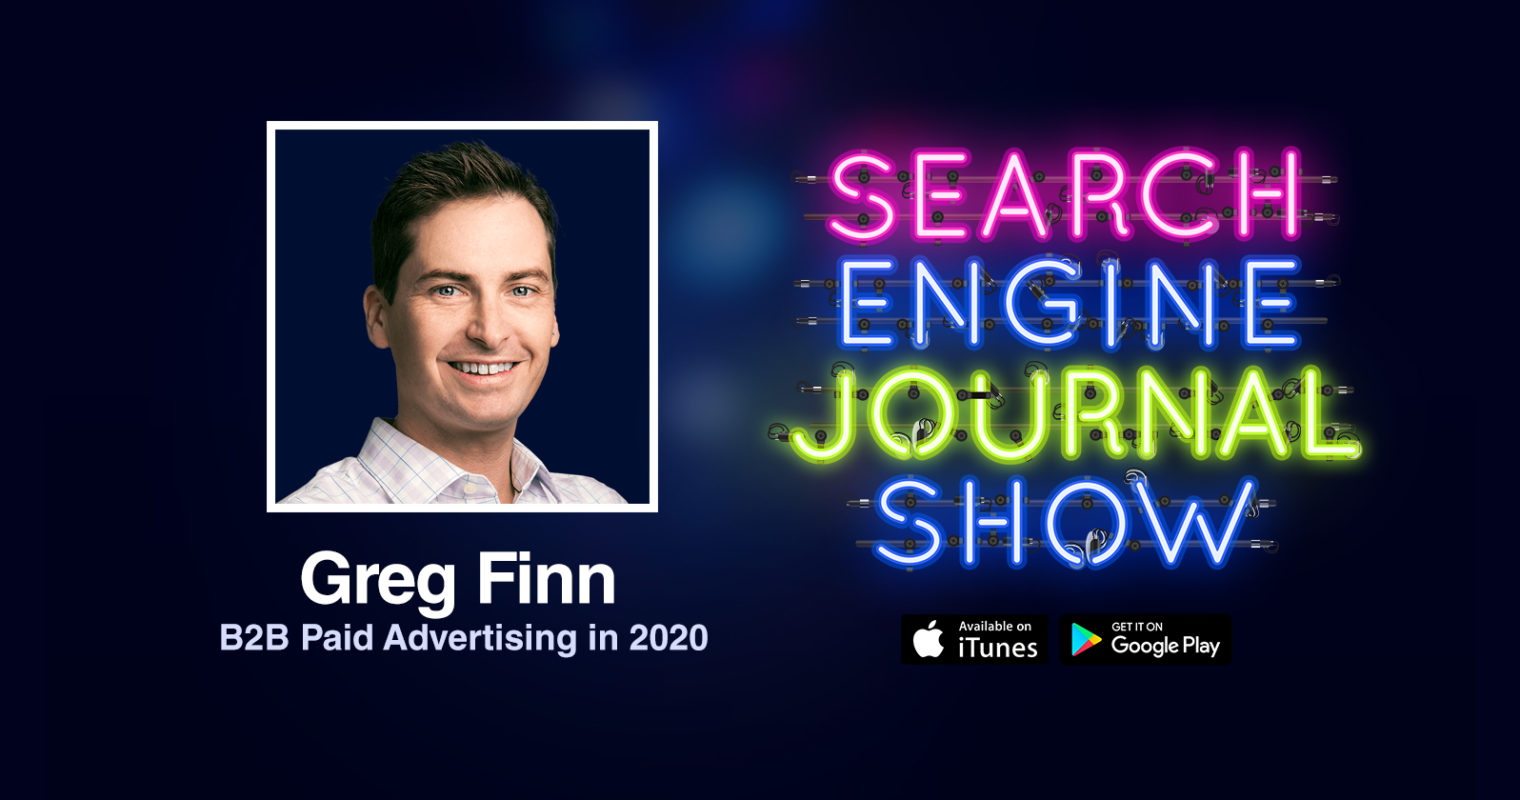 B2B Paid Advertising in 2020 with Greg Finn [PODCAST]